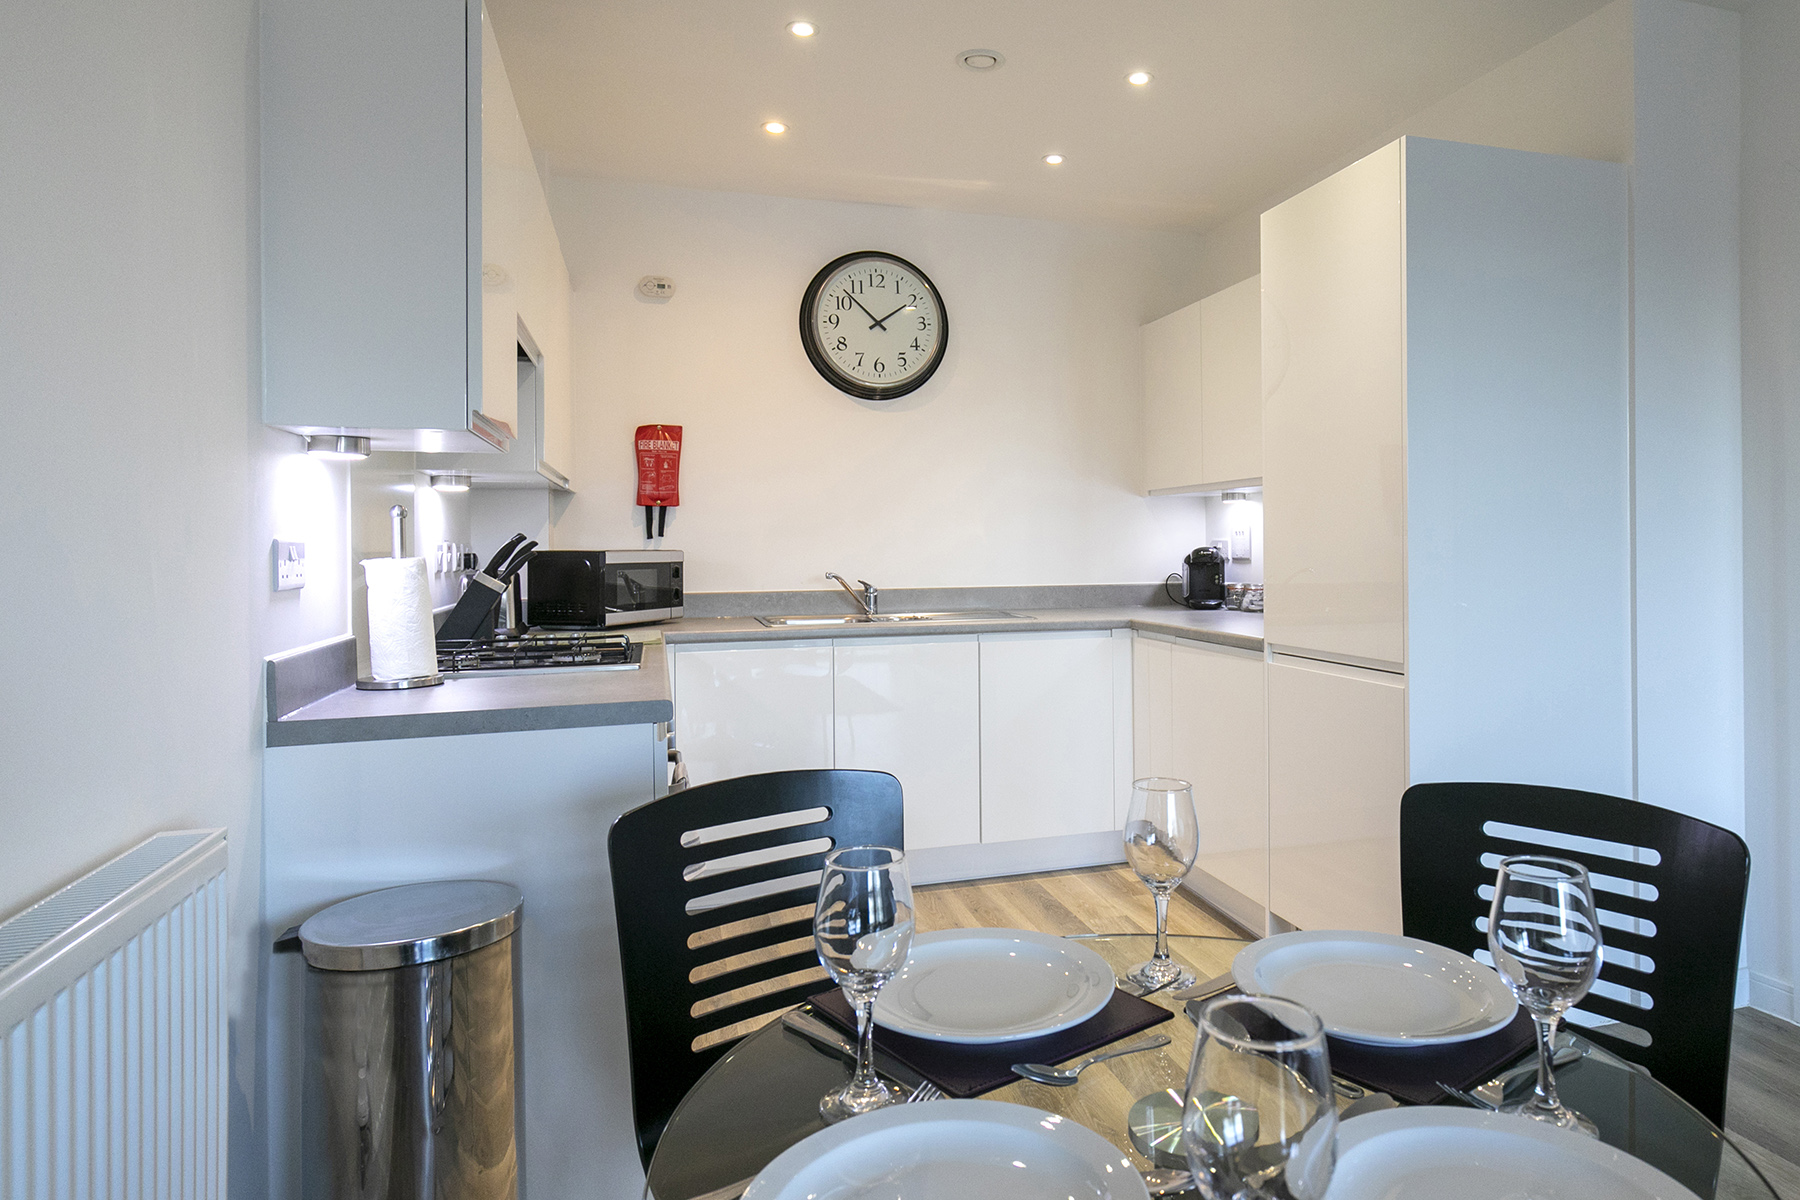 Kitchen at Wey Corner Apartment, Centre, Guildford